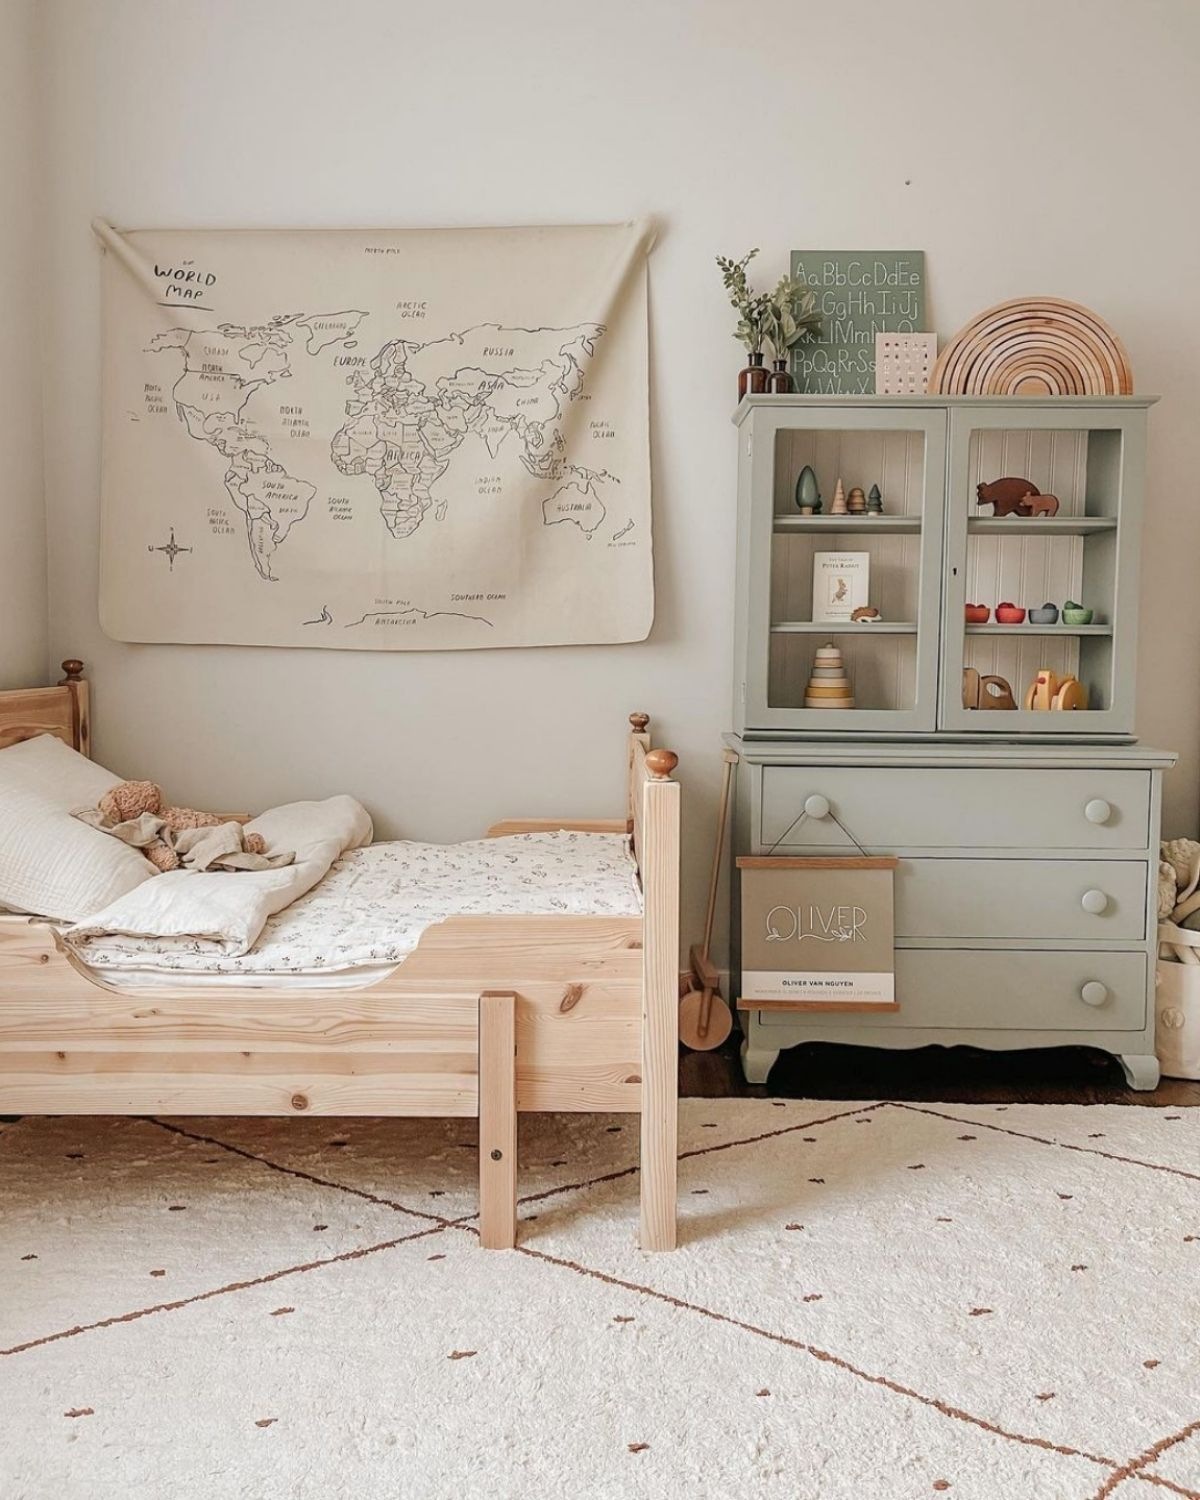 OLIVER'S ROOM by Nancy @__thenguyens - 1